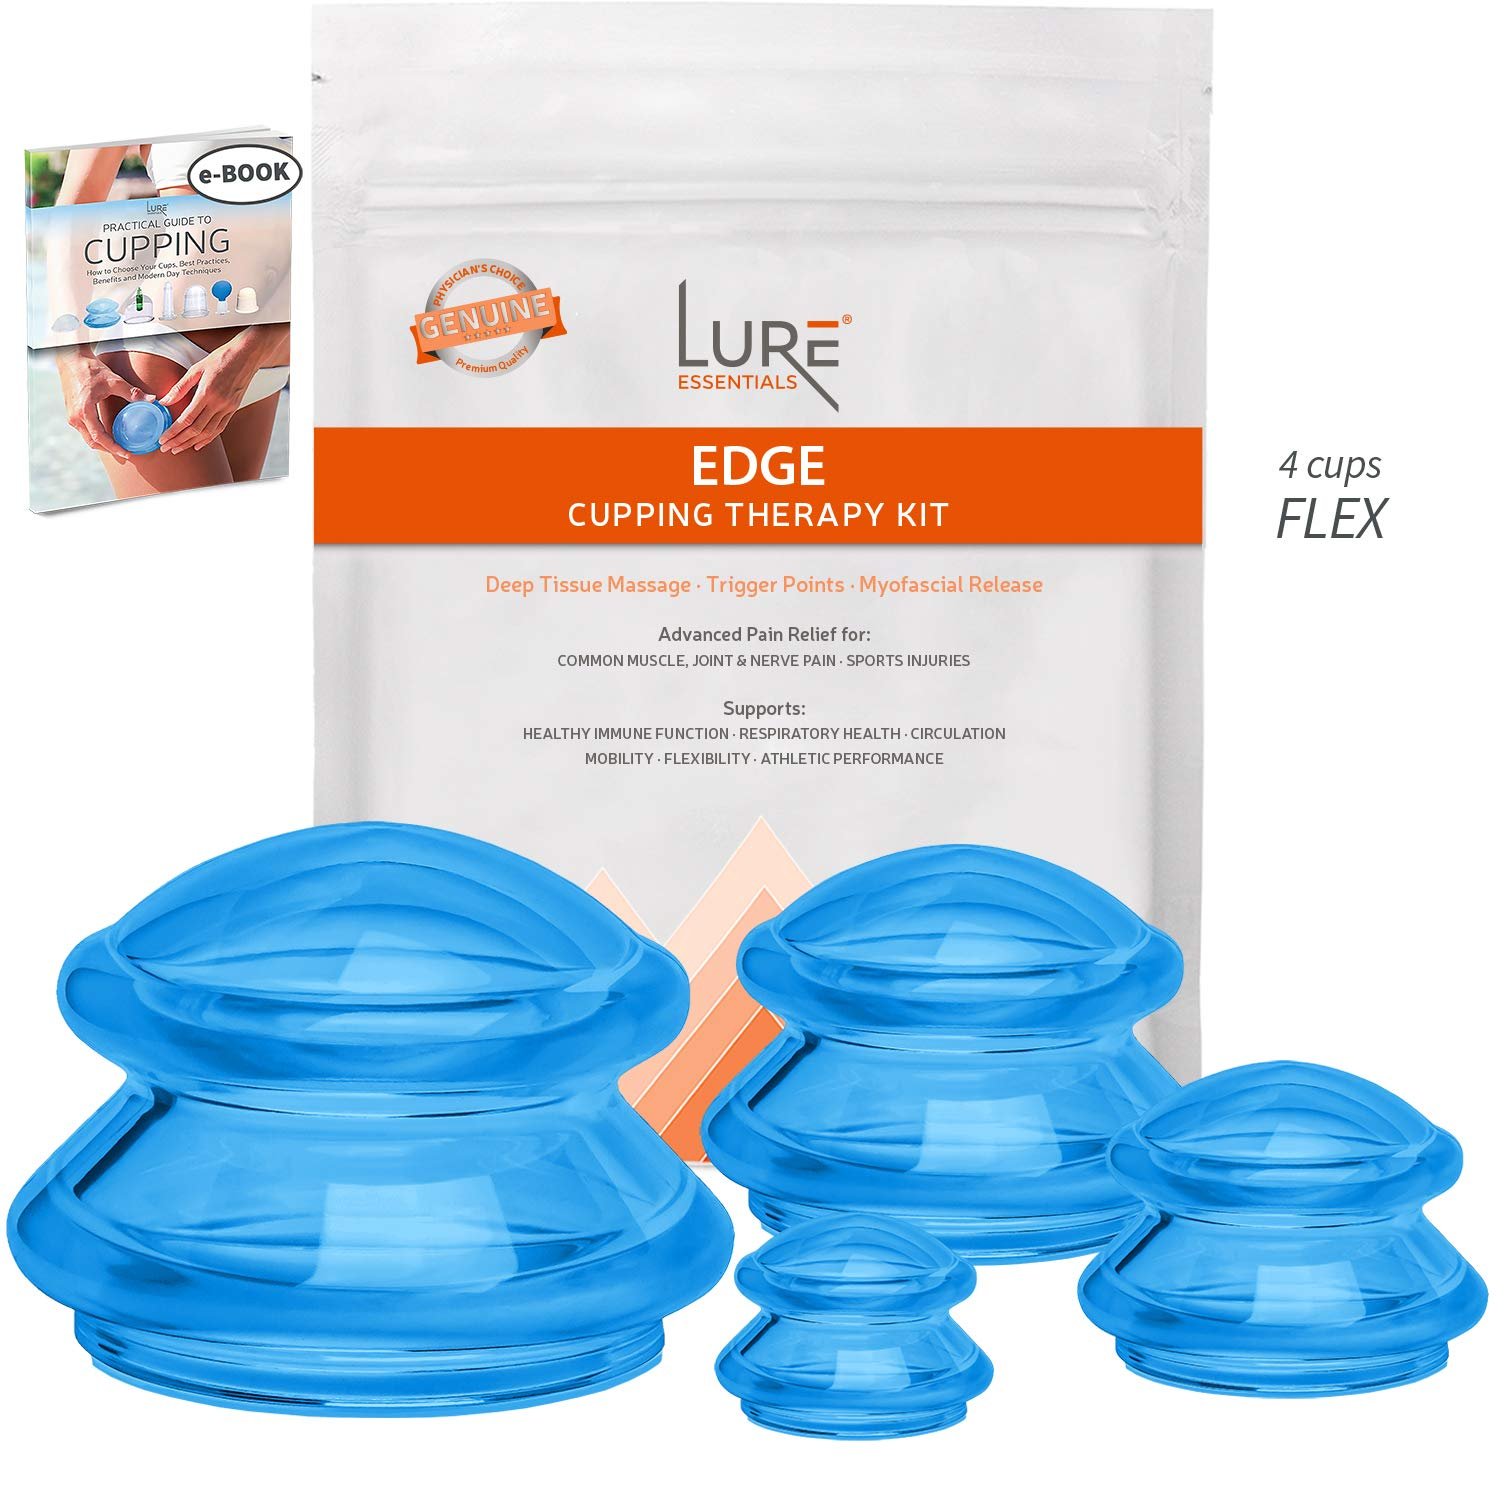 Advanced Cupping Therapy Sets - Edge Flex Silicone Vacuum Suction Cupping Cups for Muscle and Joint Pain Cellulite & More (Brilliant Blue, 4) by Lure Essentials